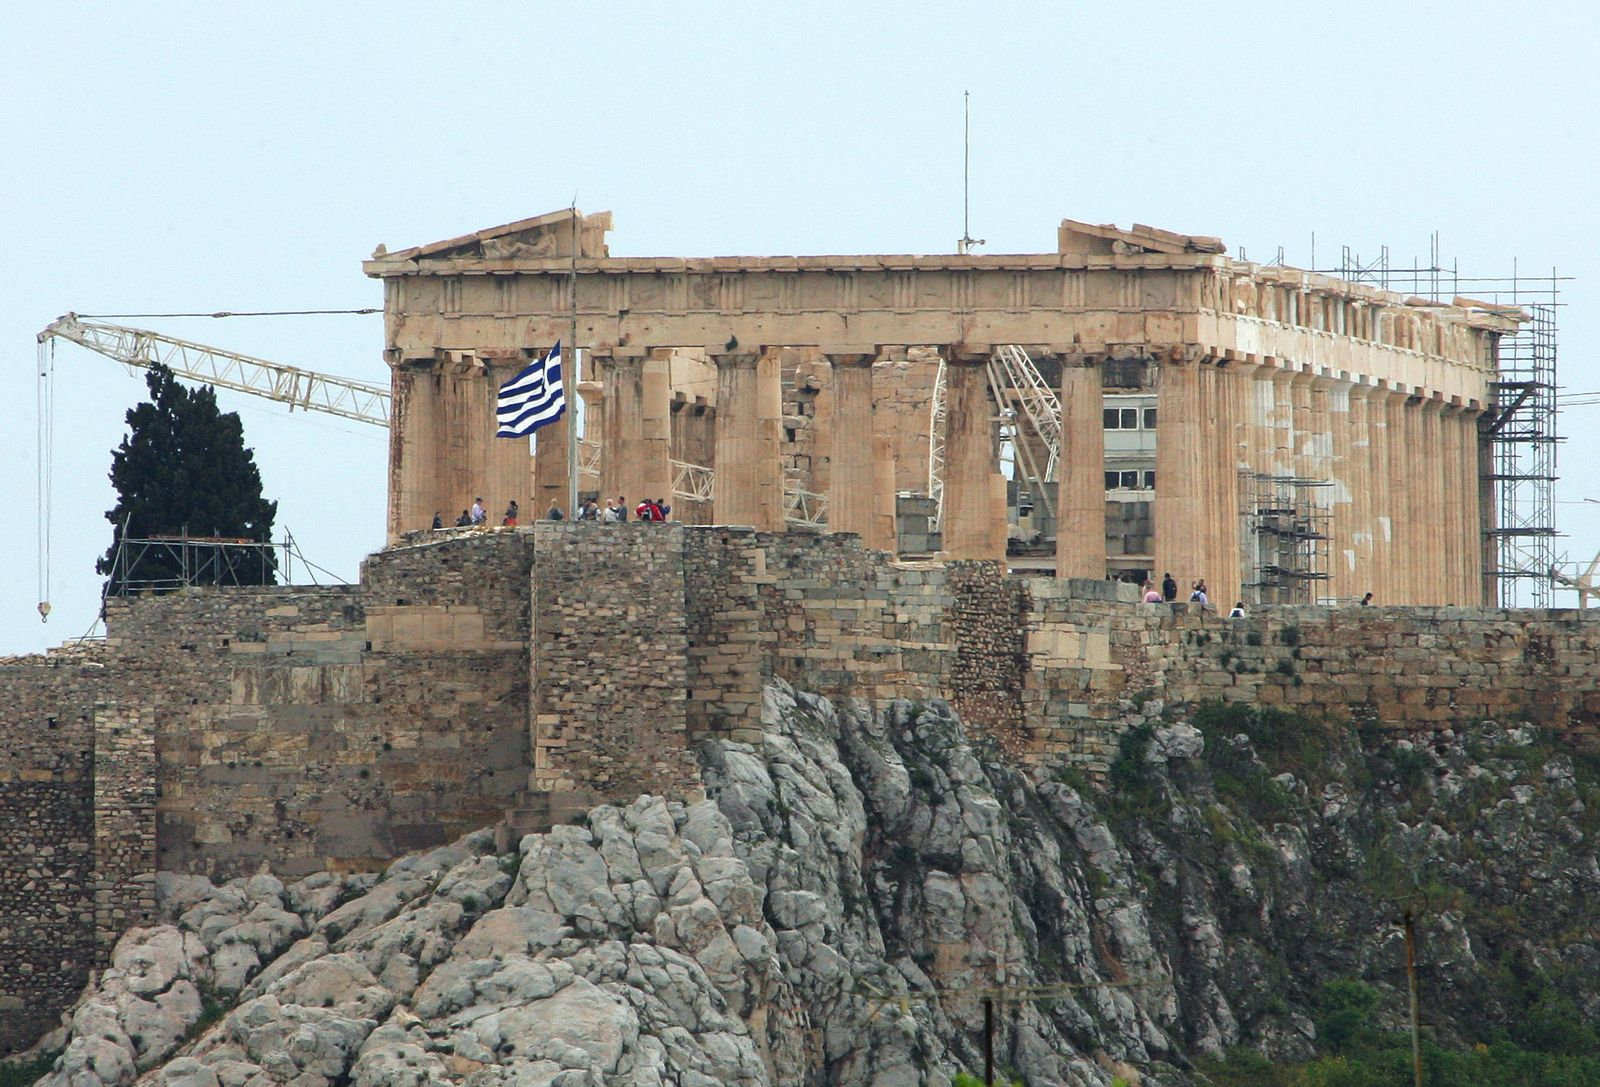 The Greek flag flies at half mast in fron of the Parthenon on the